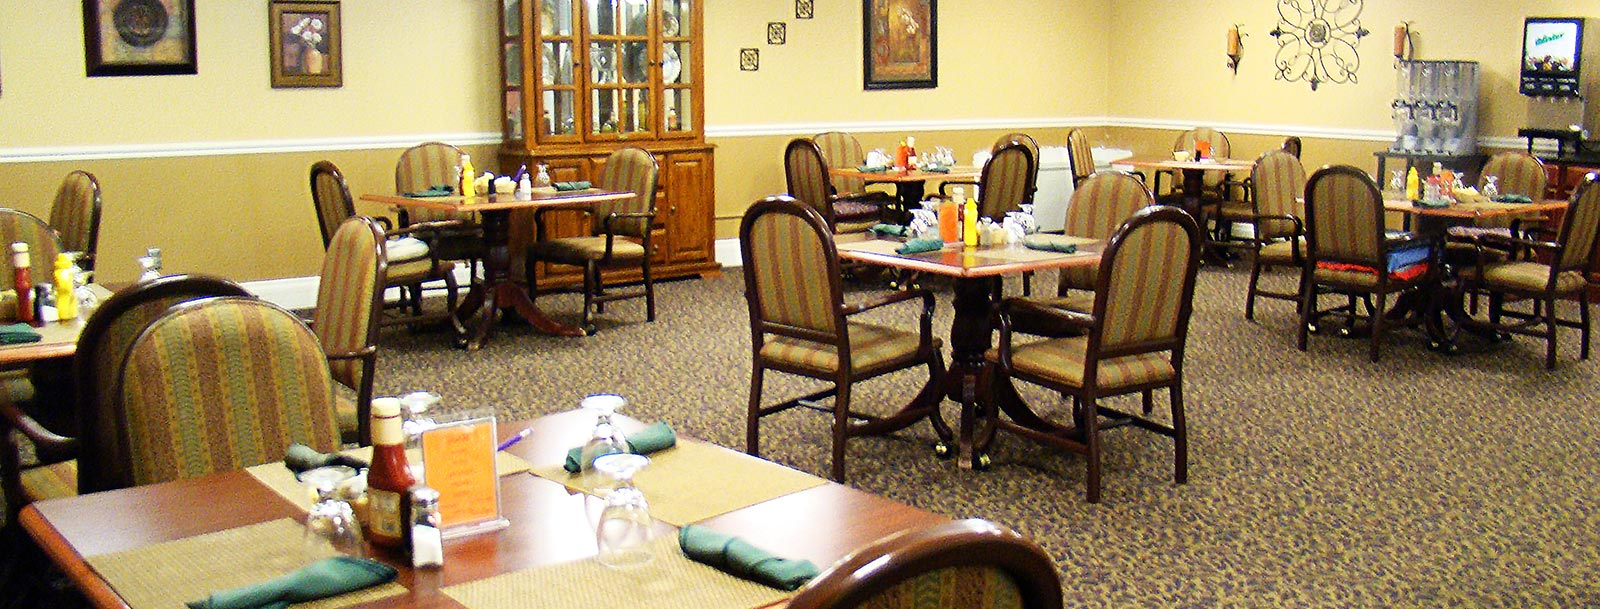 Professional chefs to prepare your meals at the senior living facility in Parsons